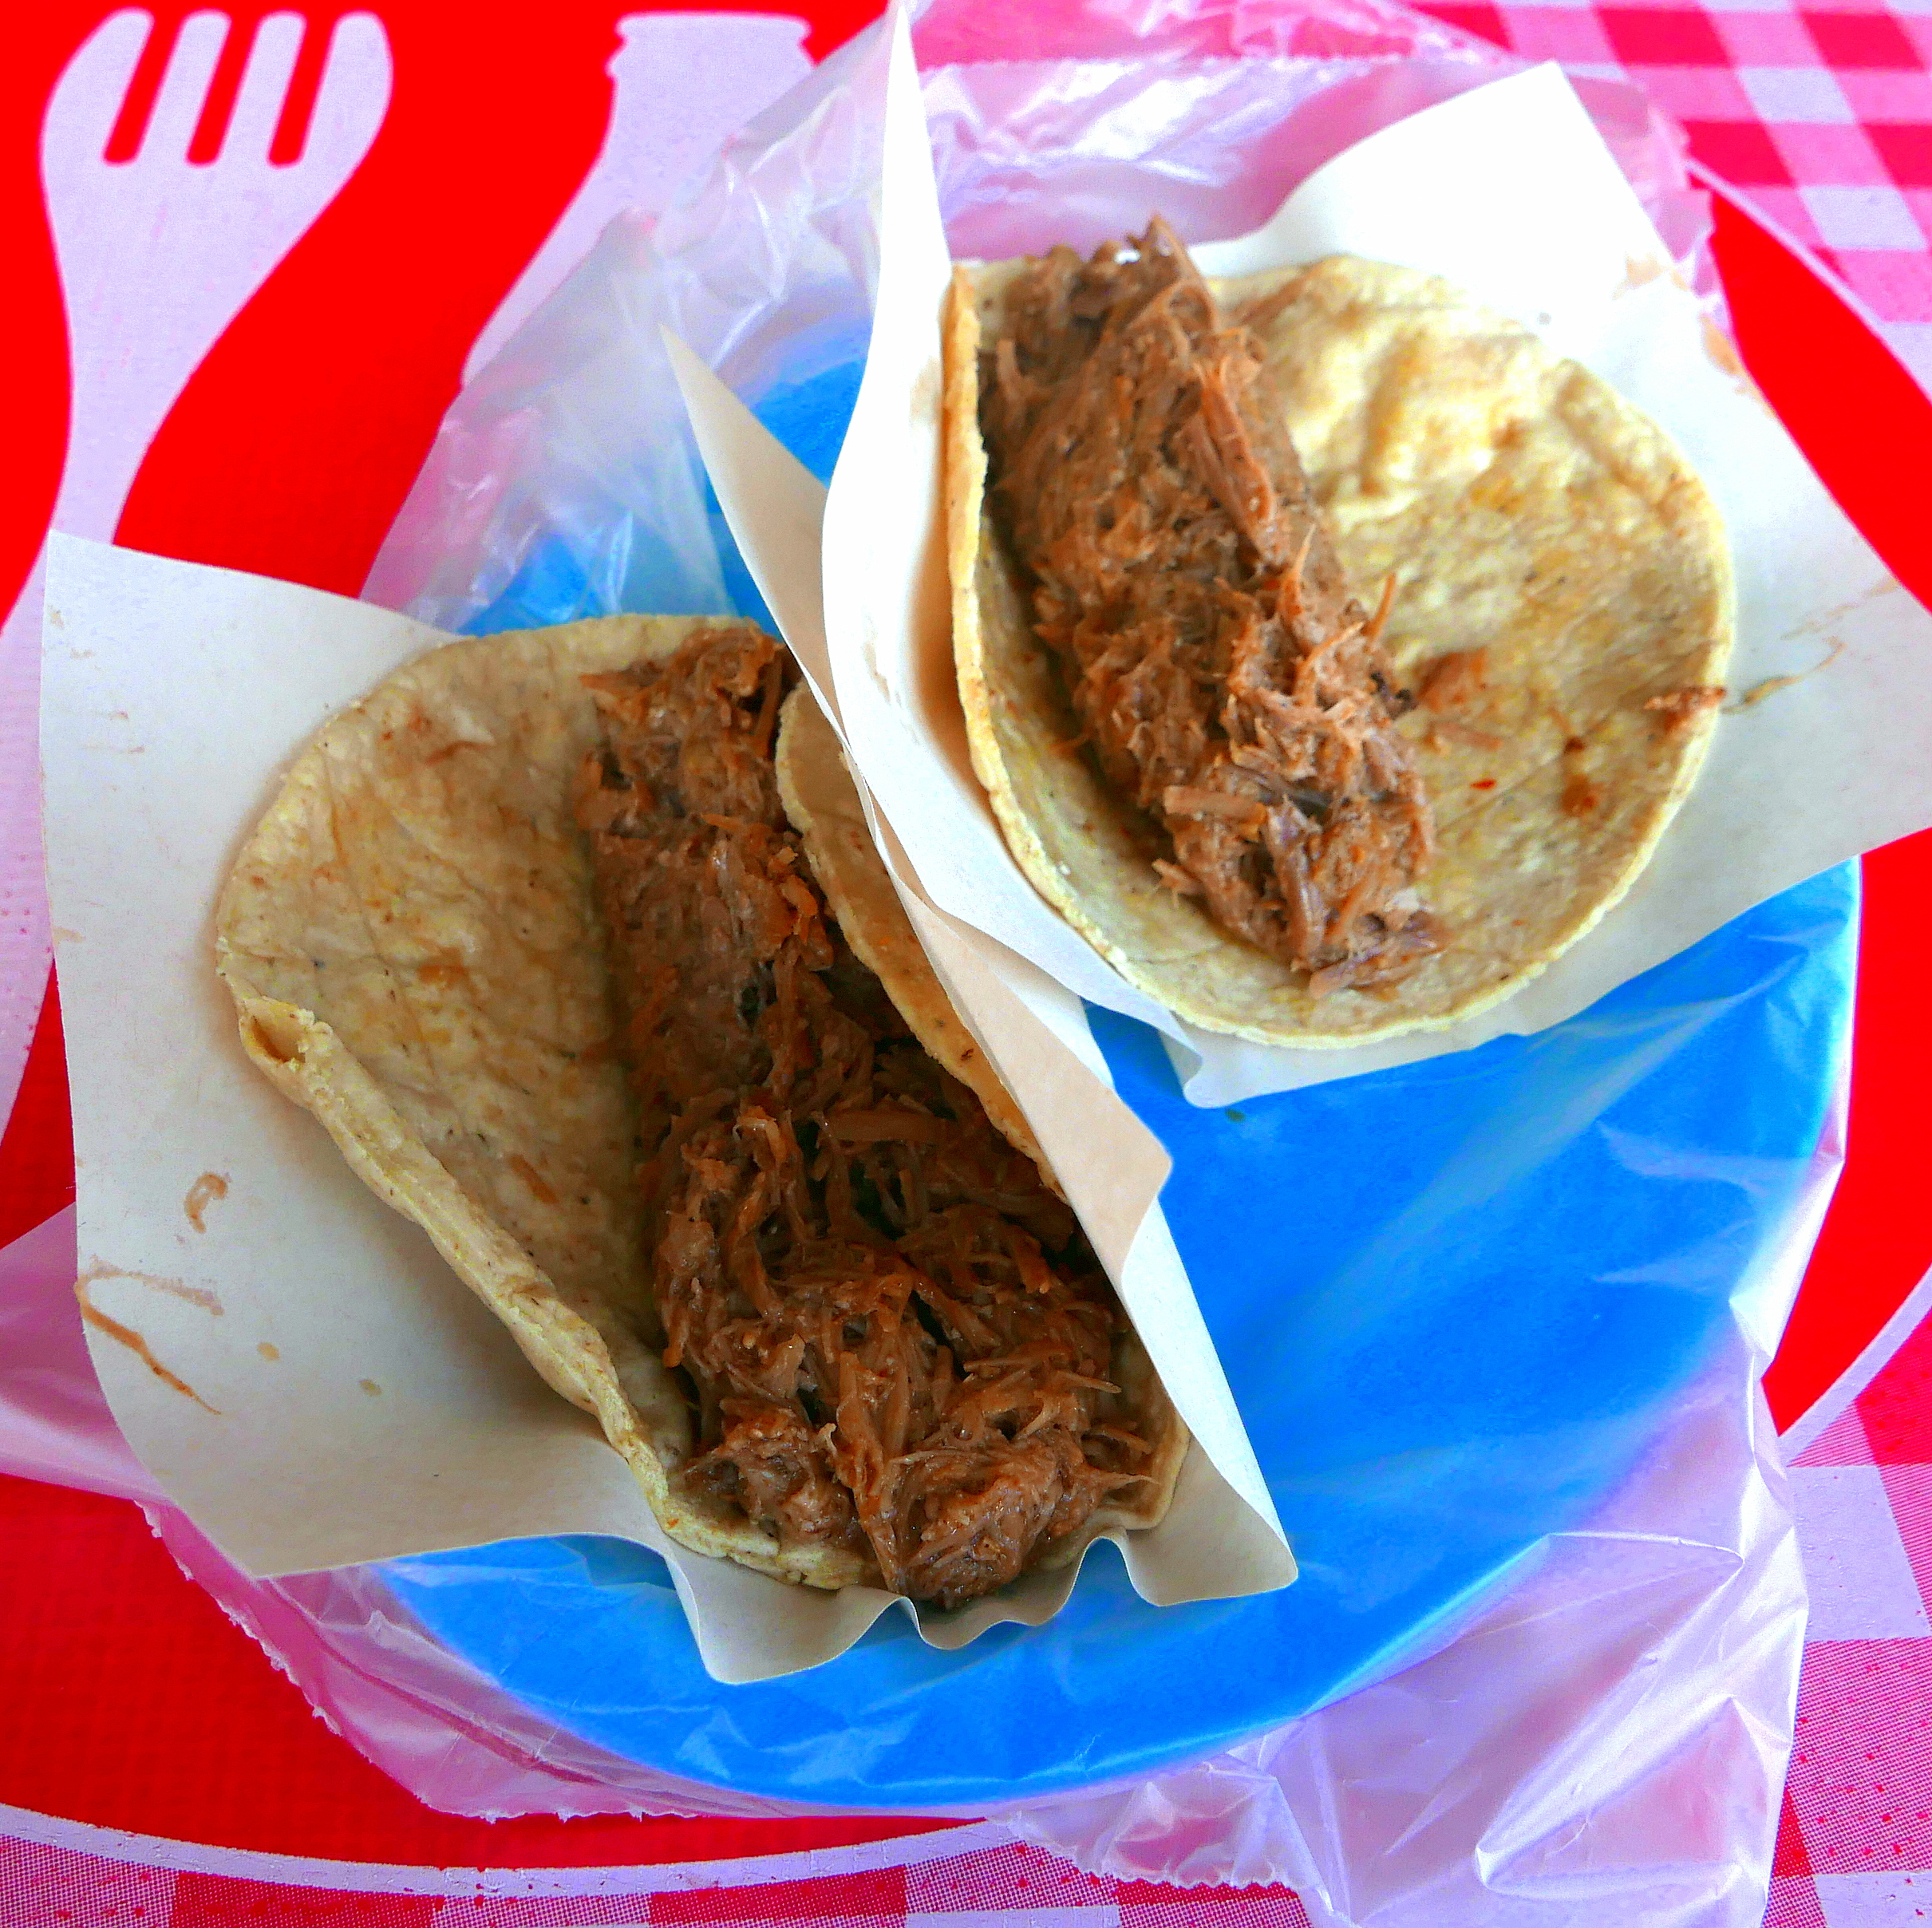 Tacos de Borrego as they arrive